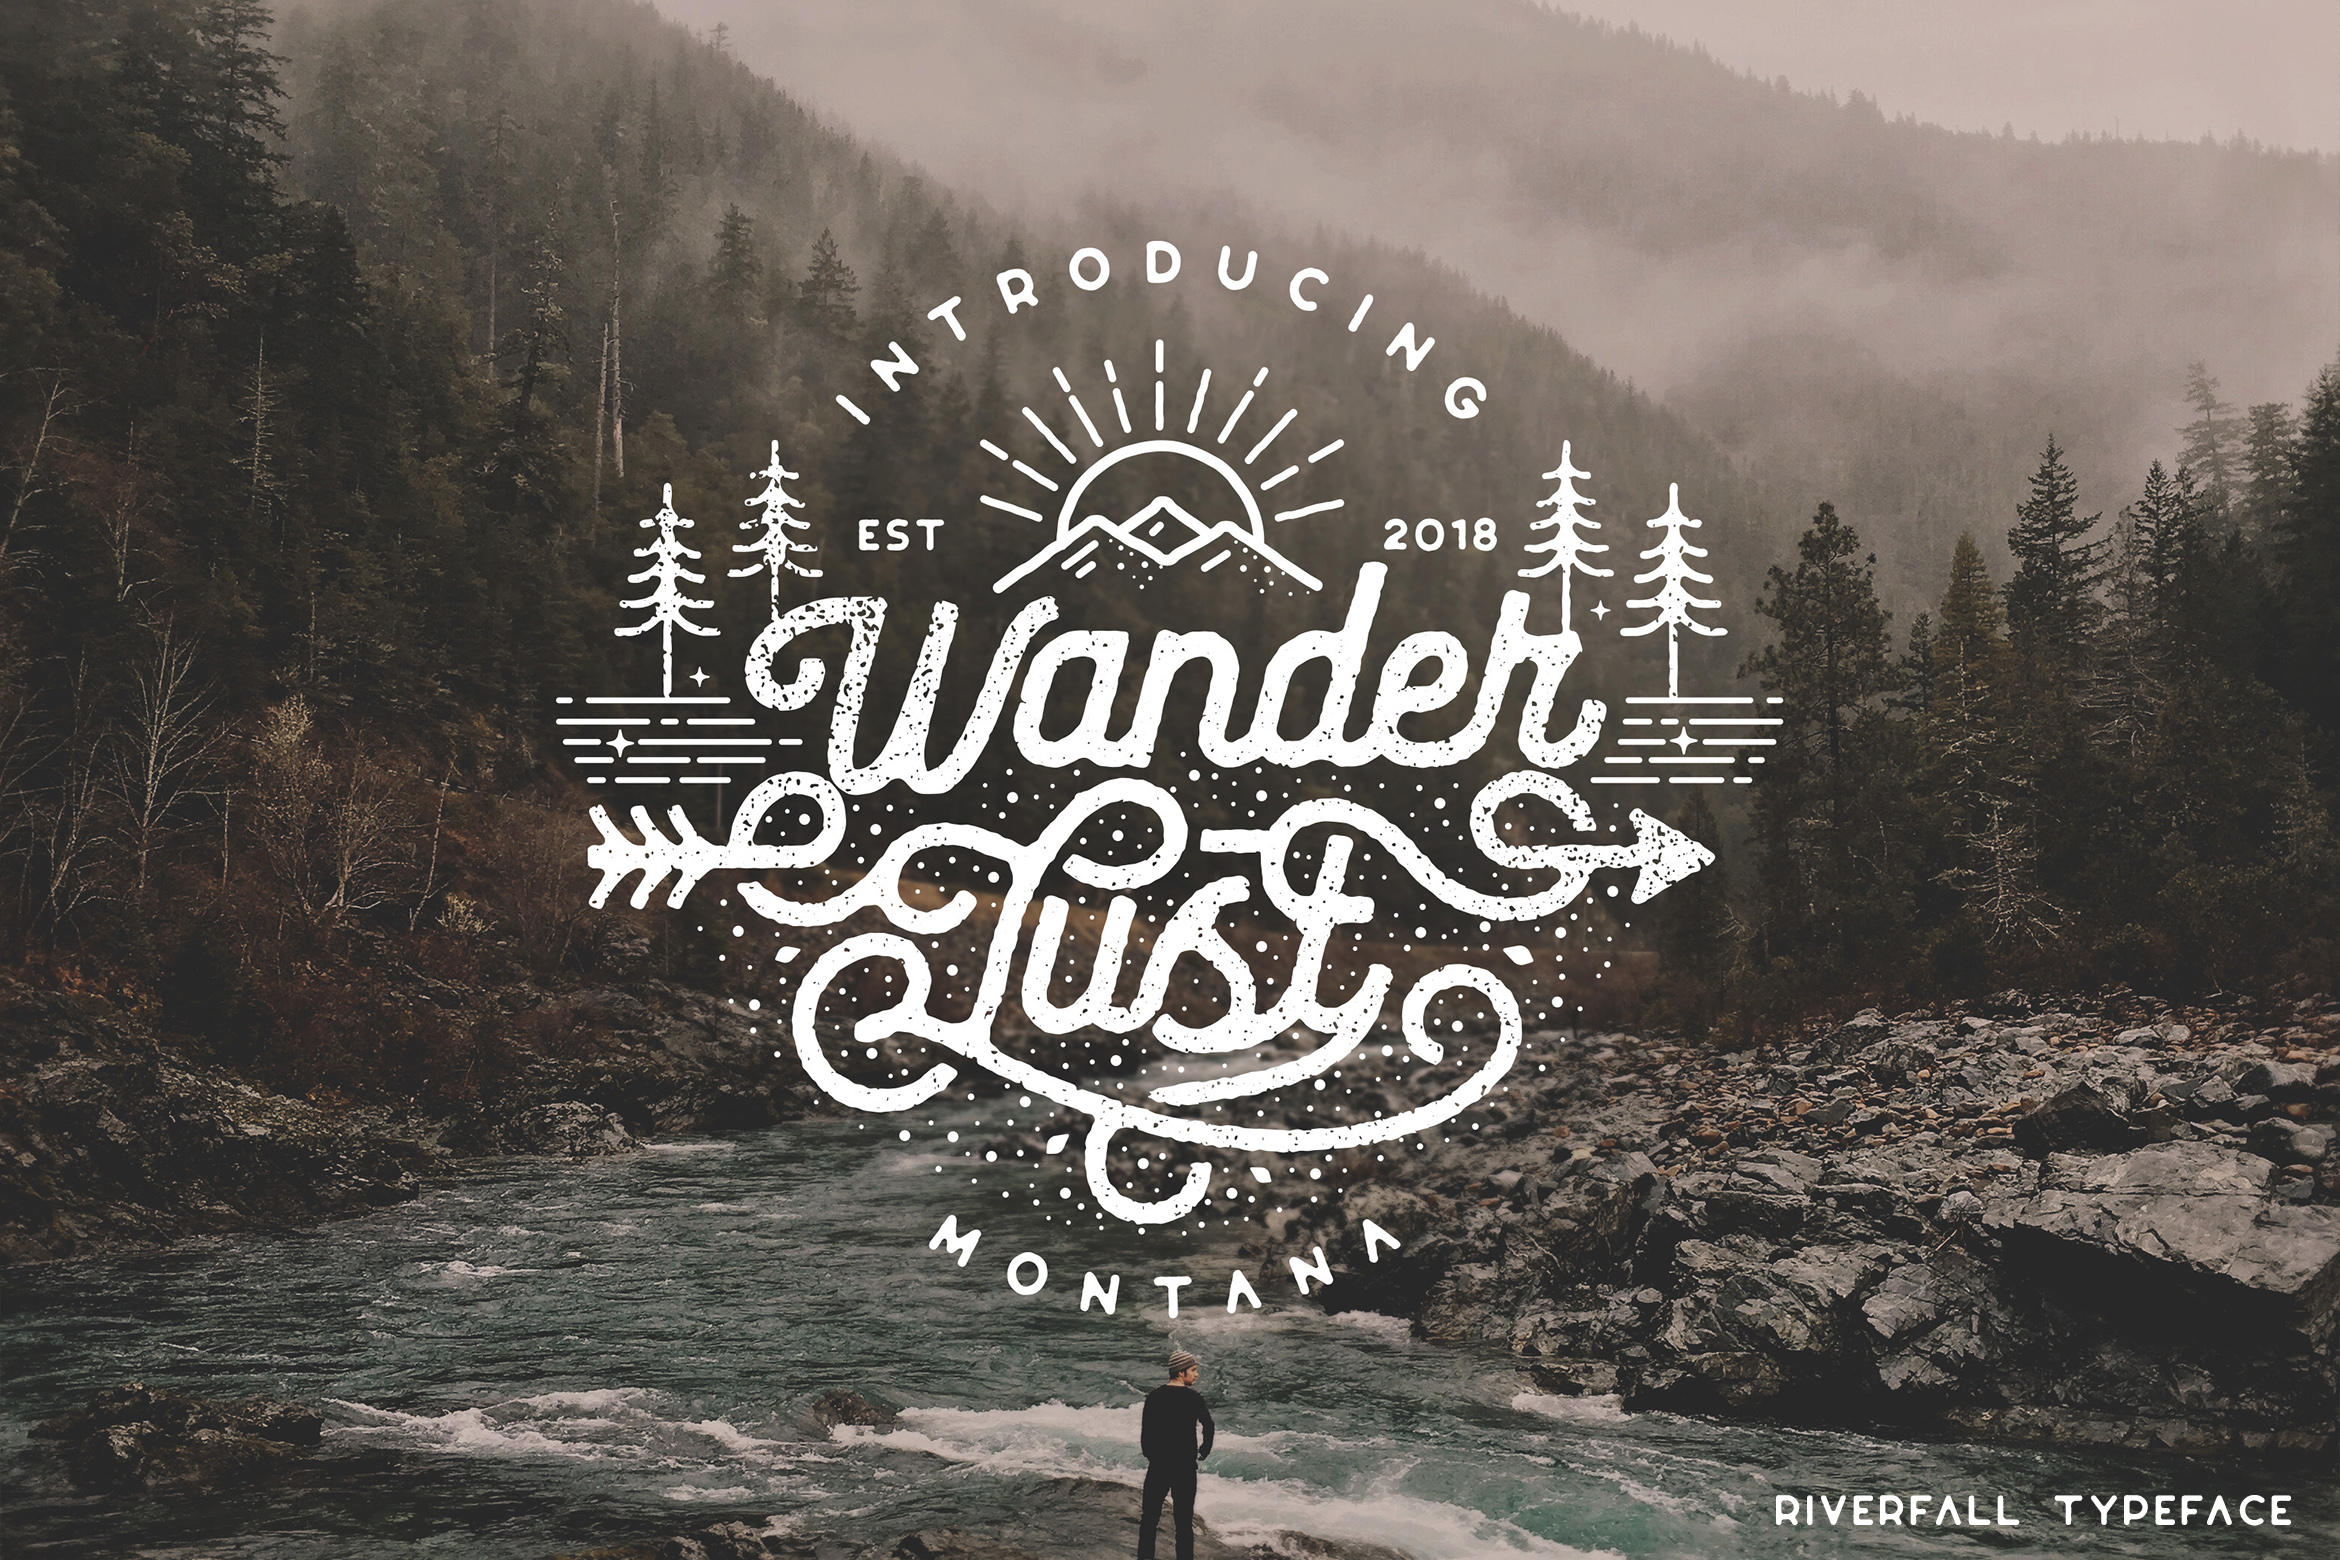 Riverfall Semi Rounded Textured Typeface Ver.2 example image 1